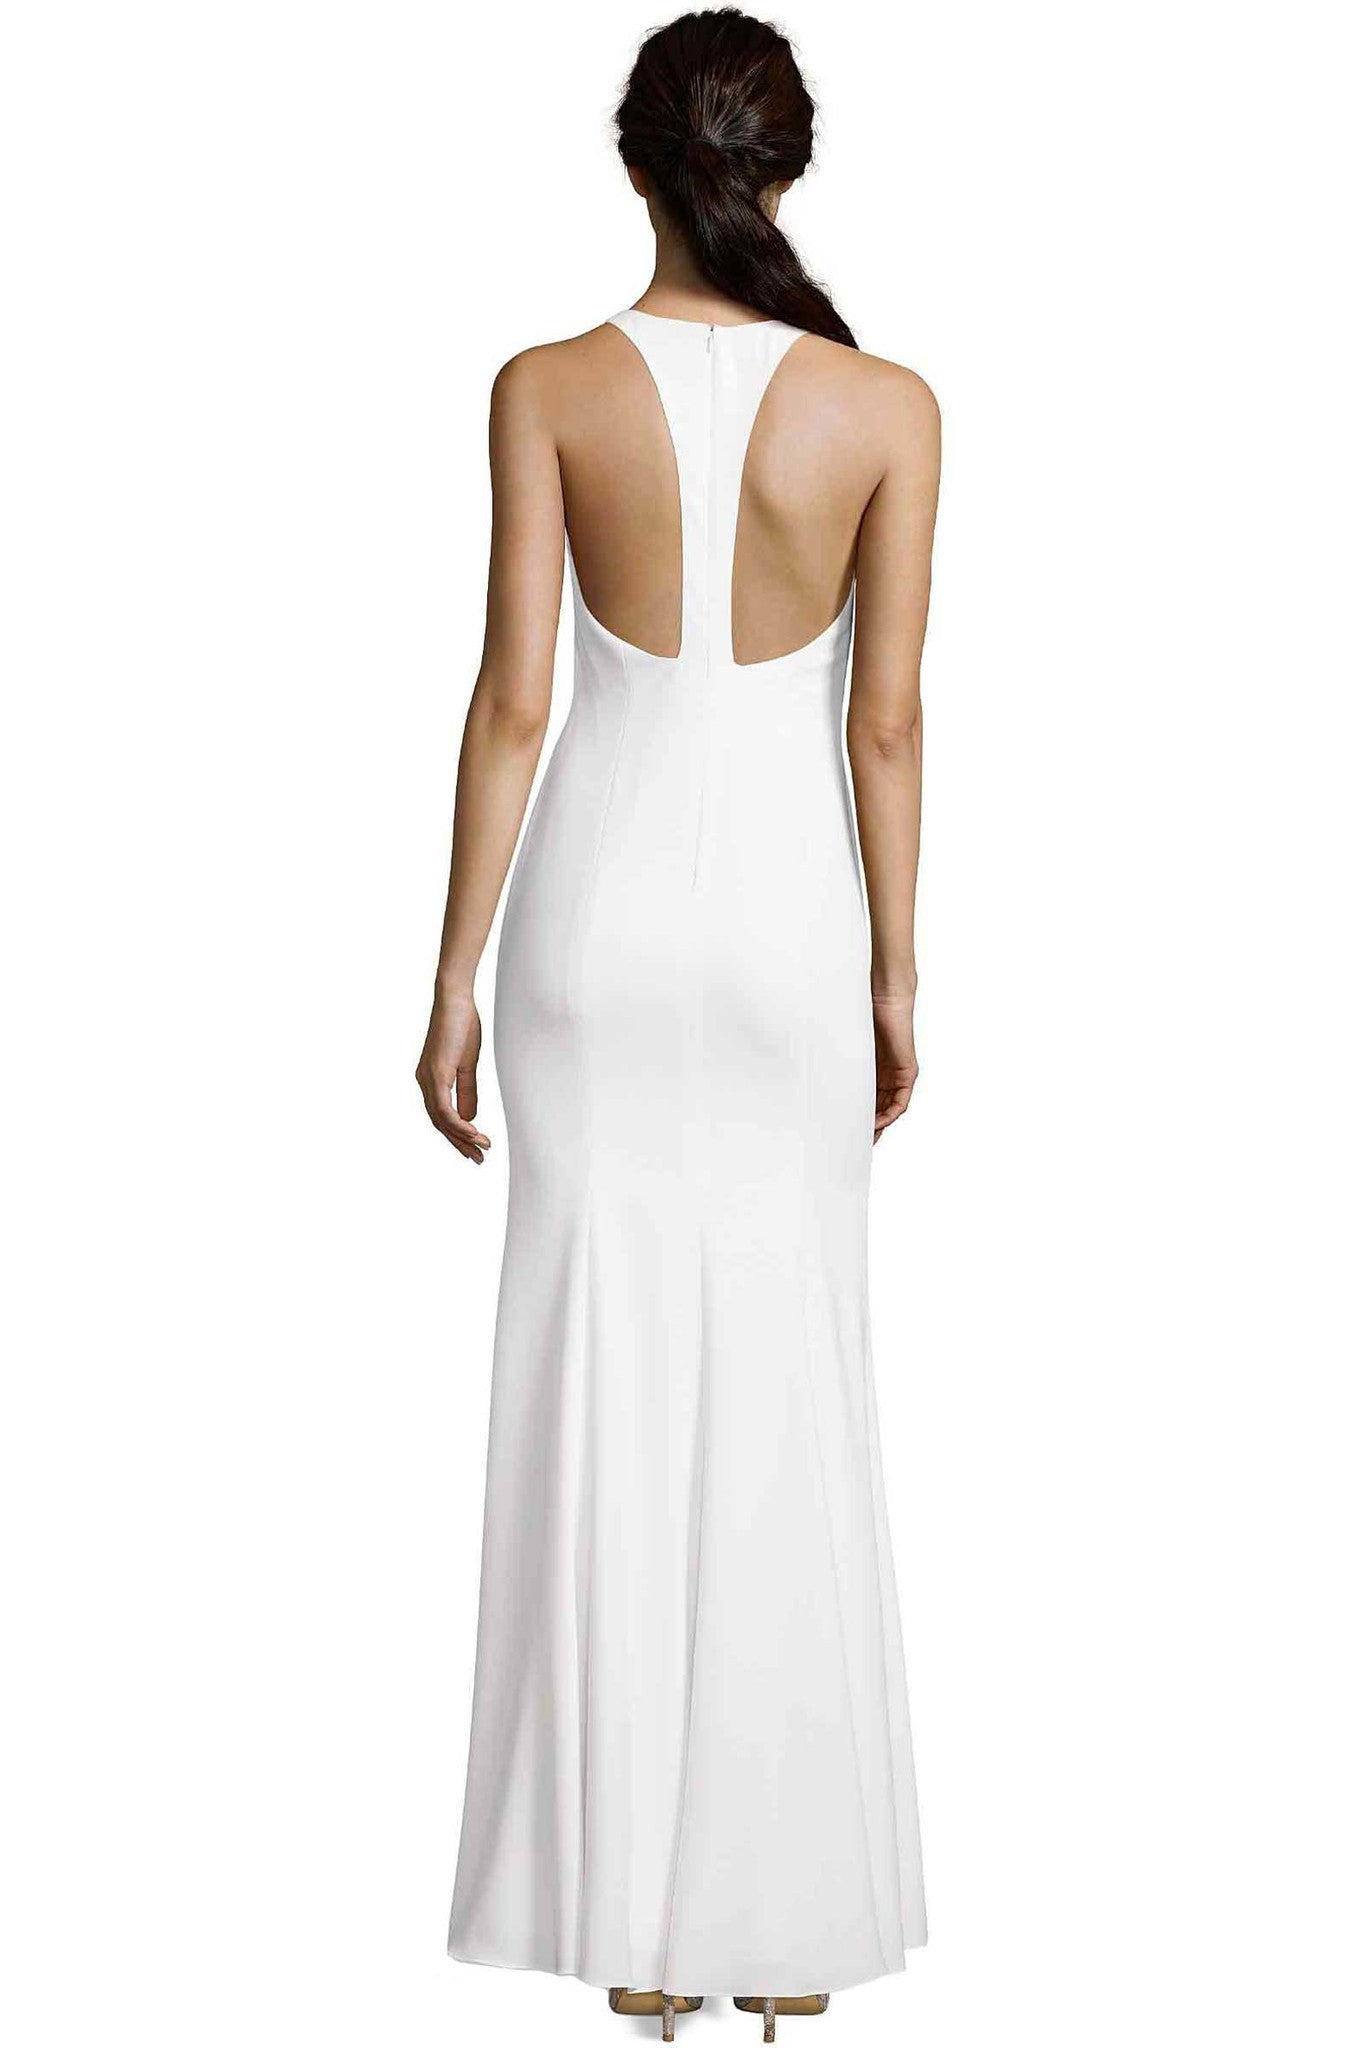 ABBOTSFORD DEEP V NECK IVORY DRESS